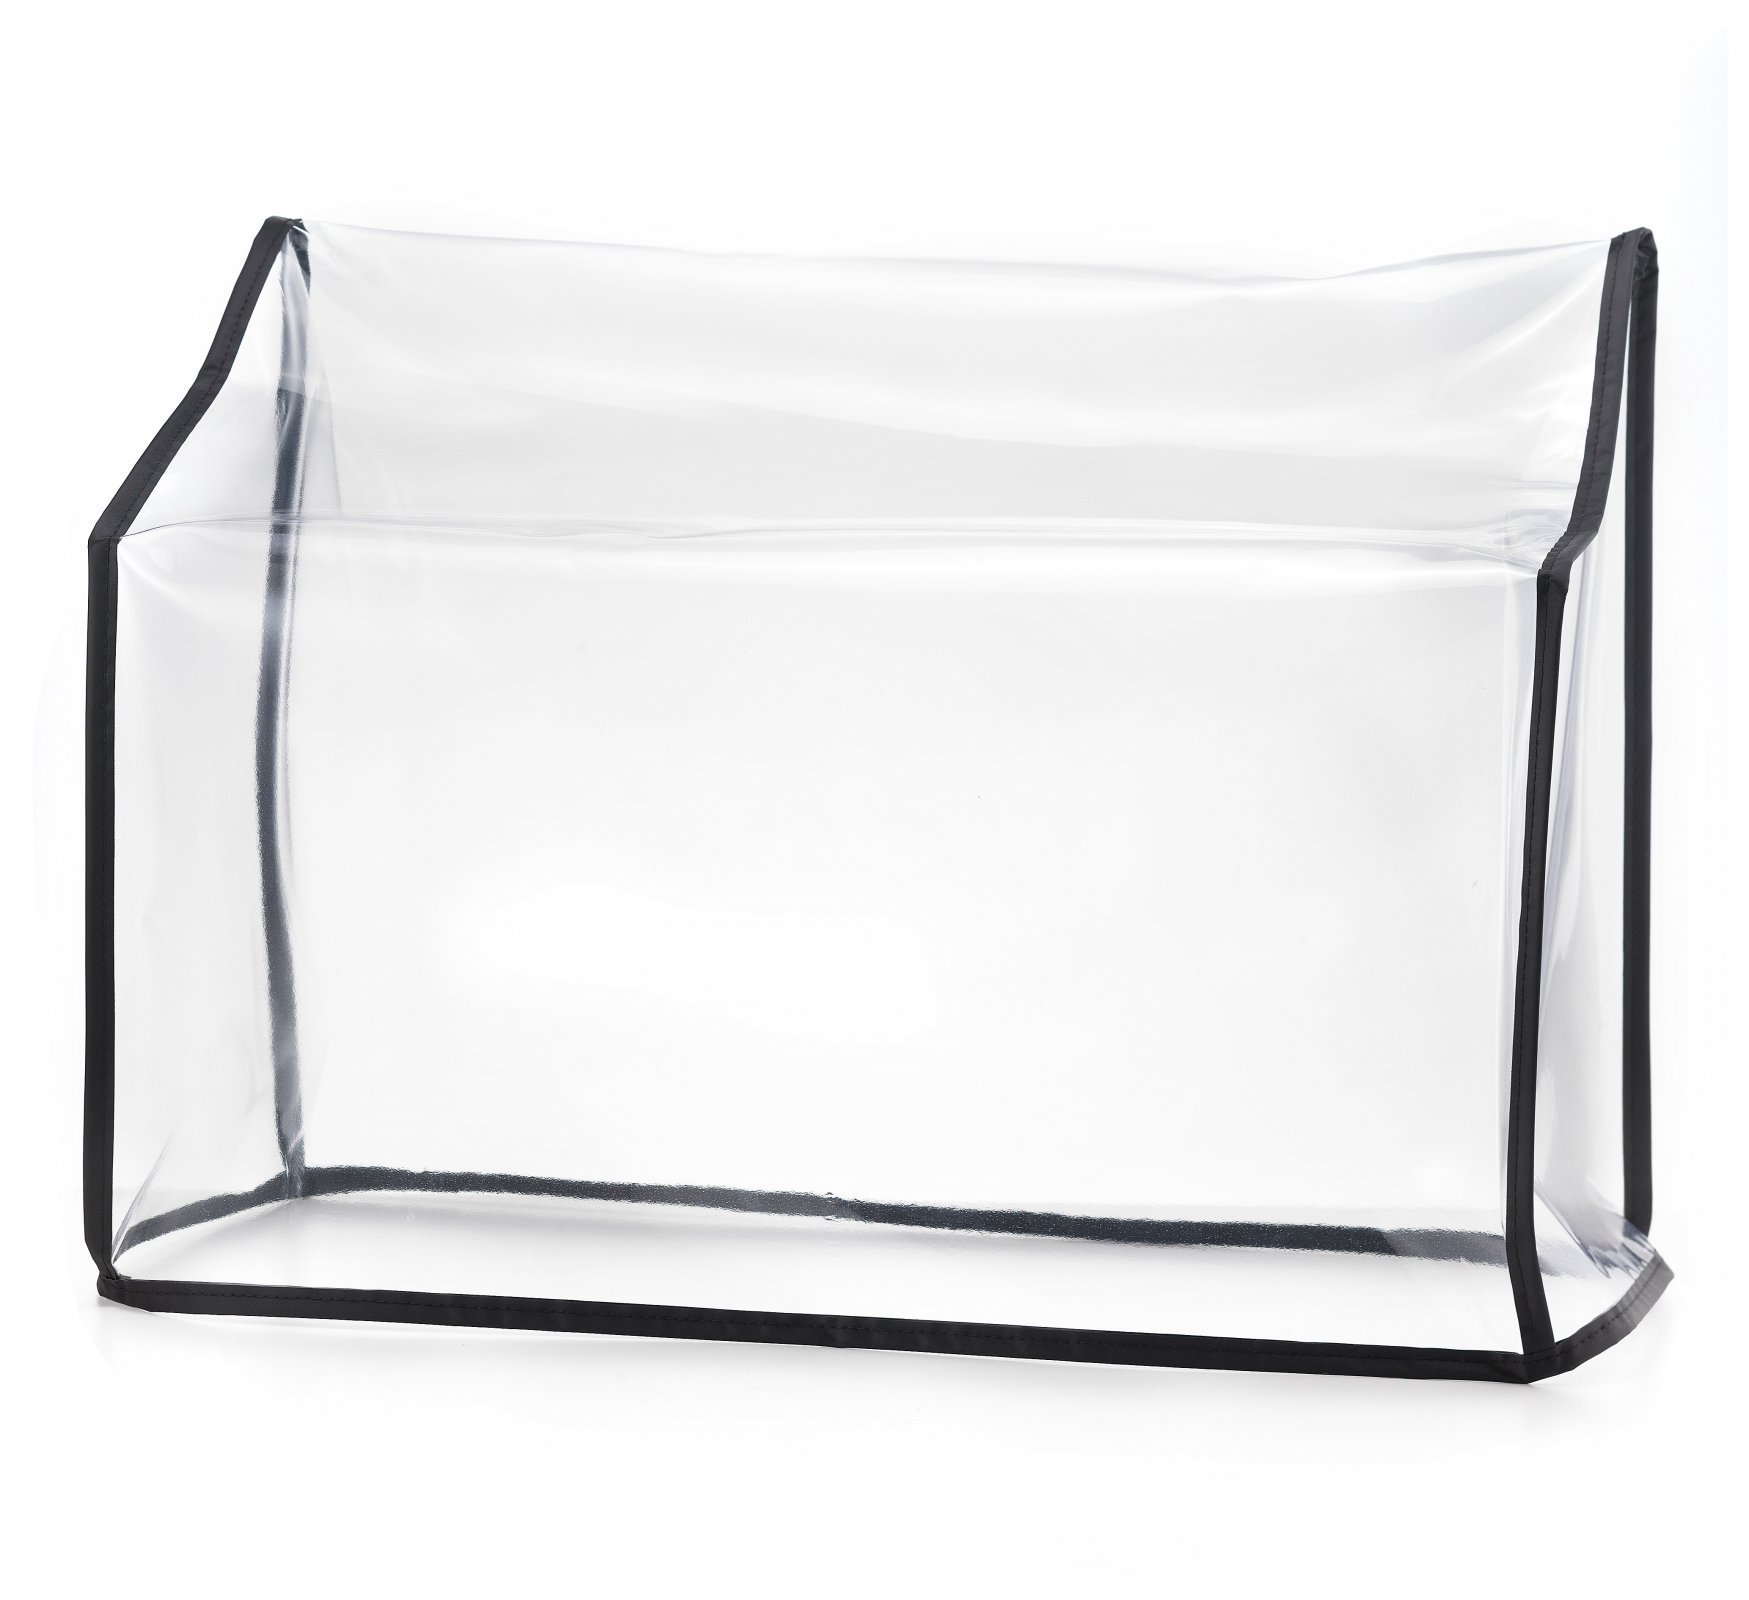 NEW Crystal Clear Fuselli Dust Cover for Accordion - Small (Fits 72 Bass Accordions)